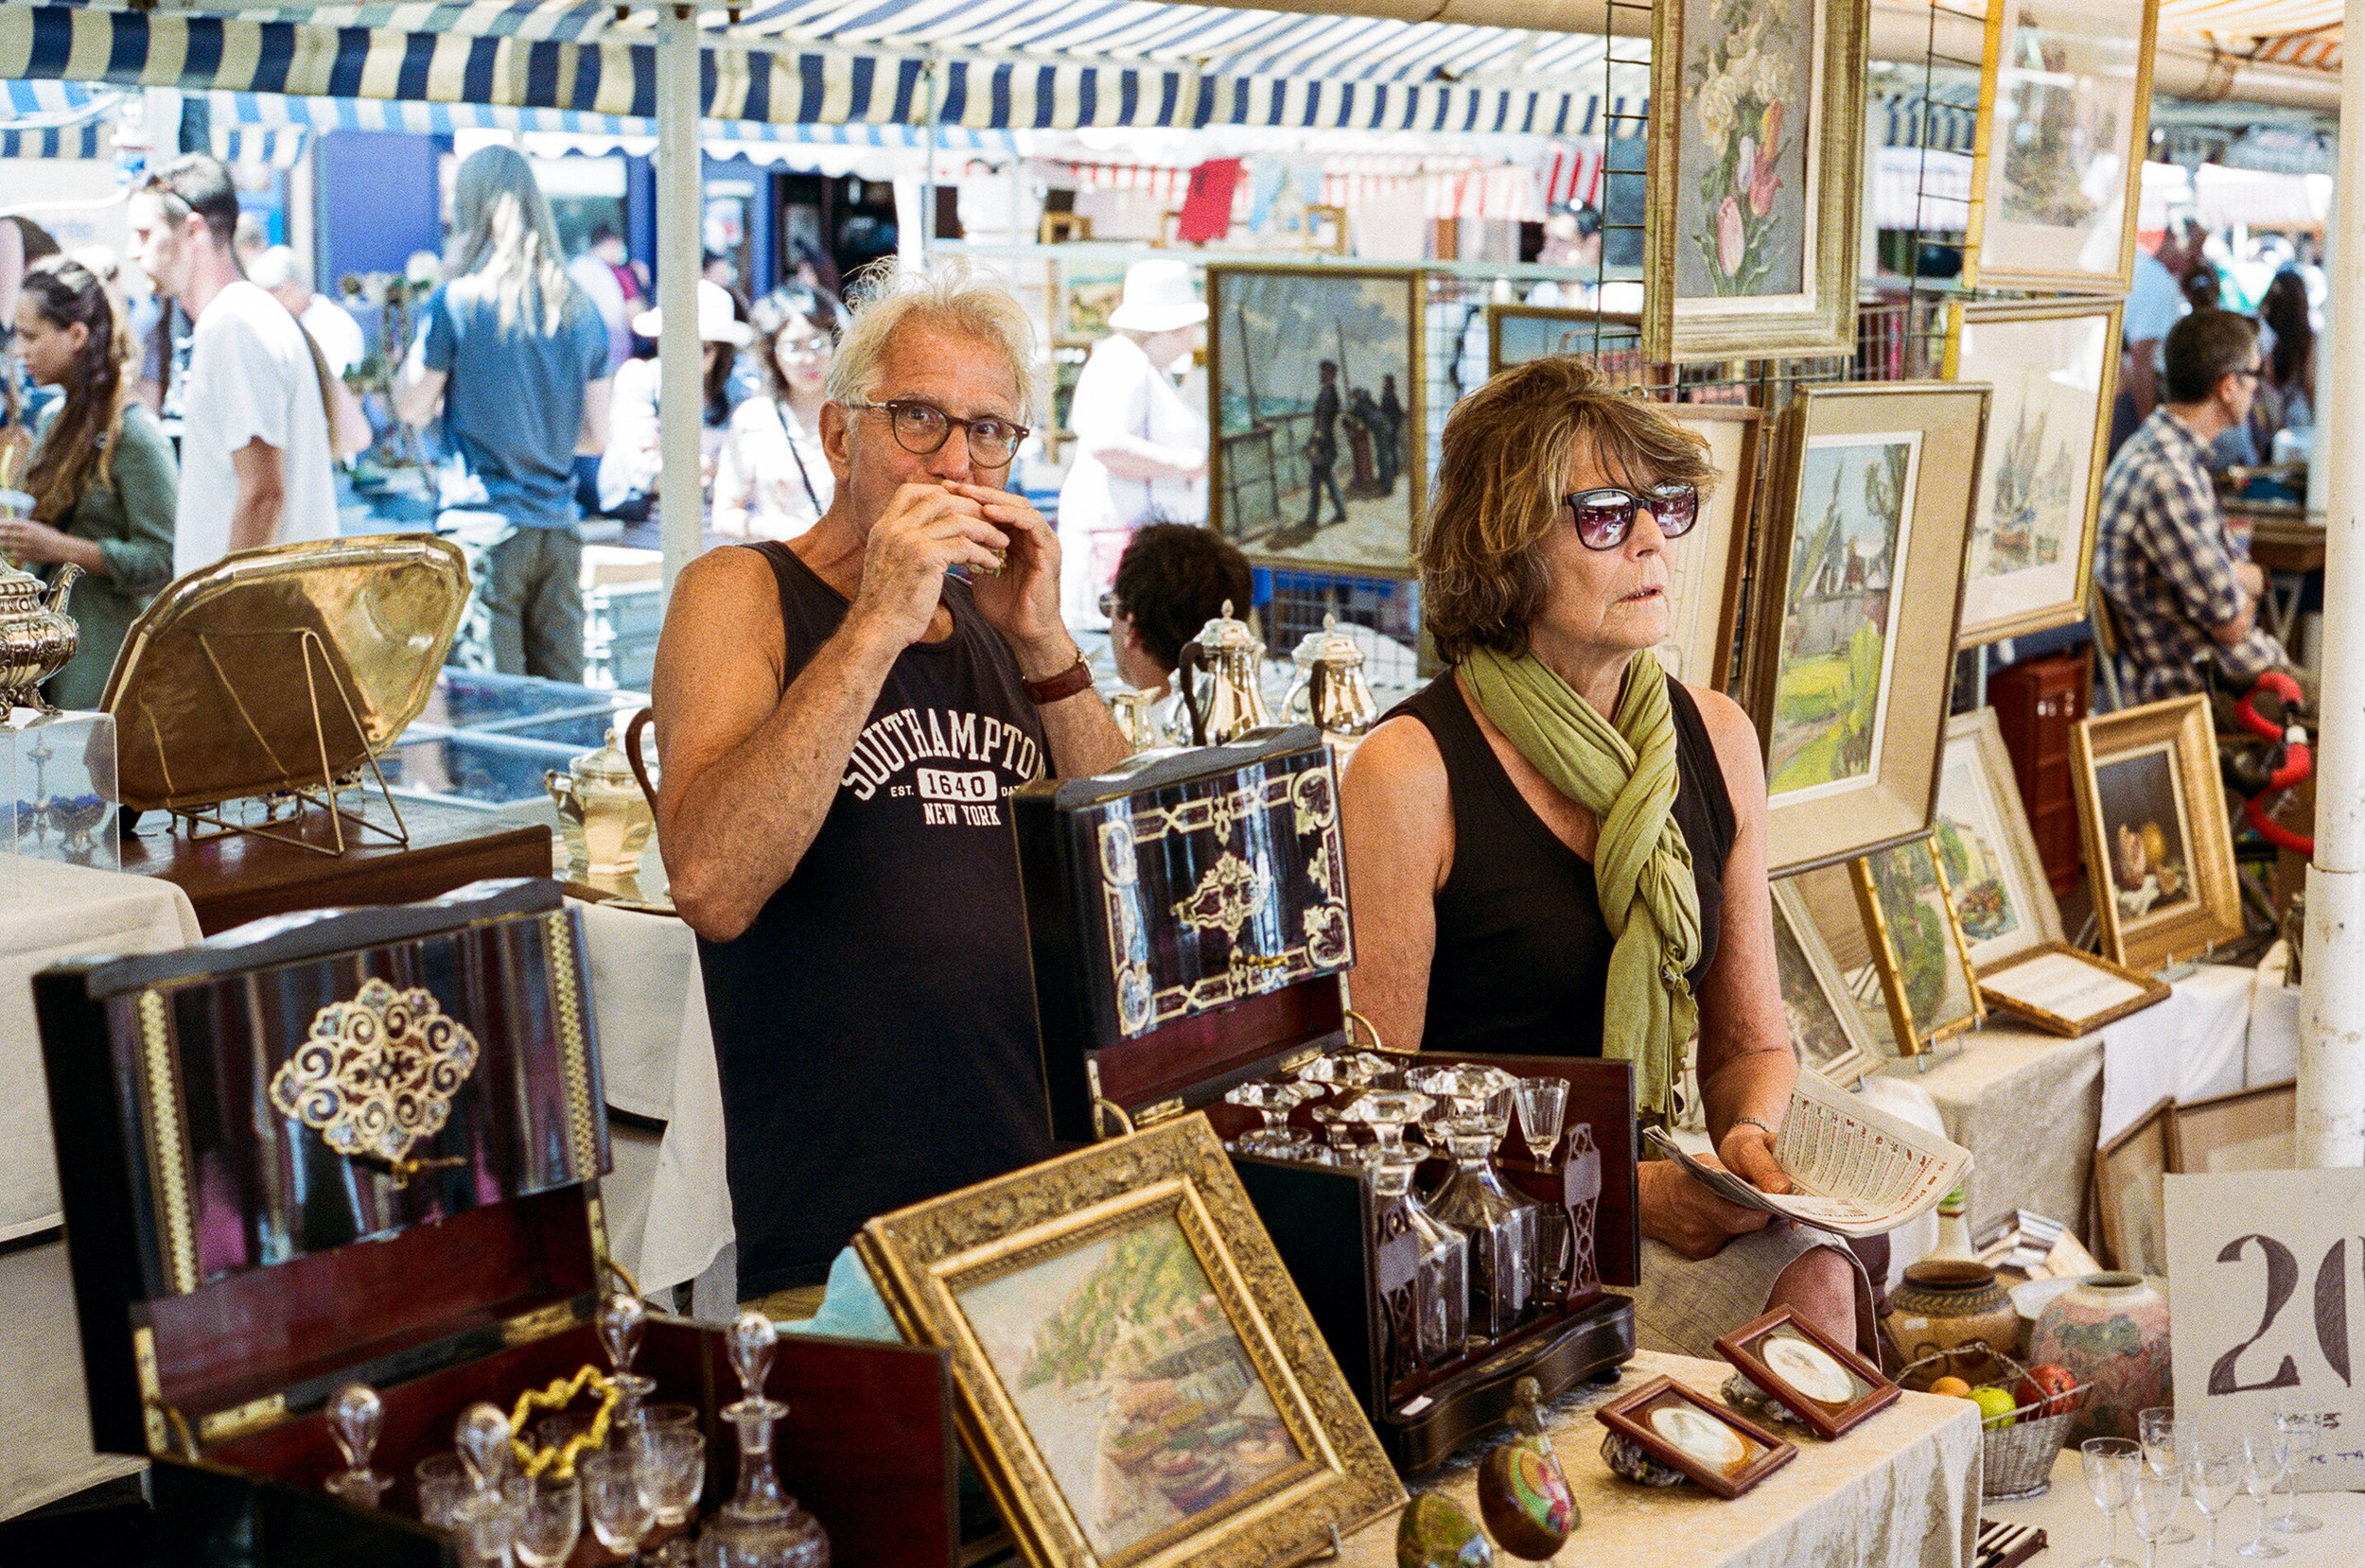 Cours Saleya Flea Market, Nice. France. 2017.